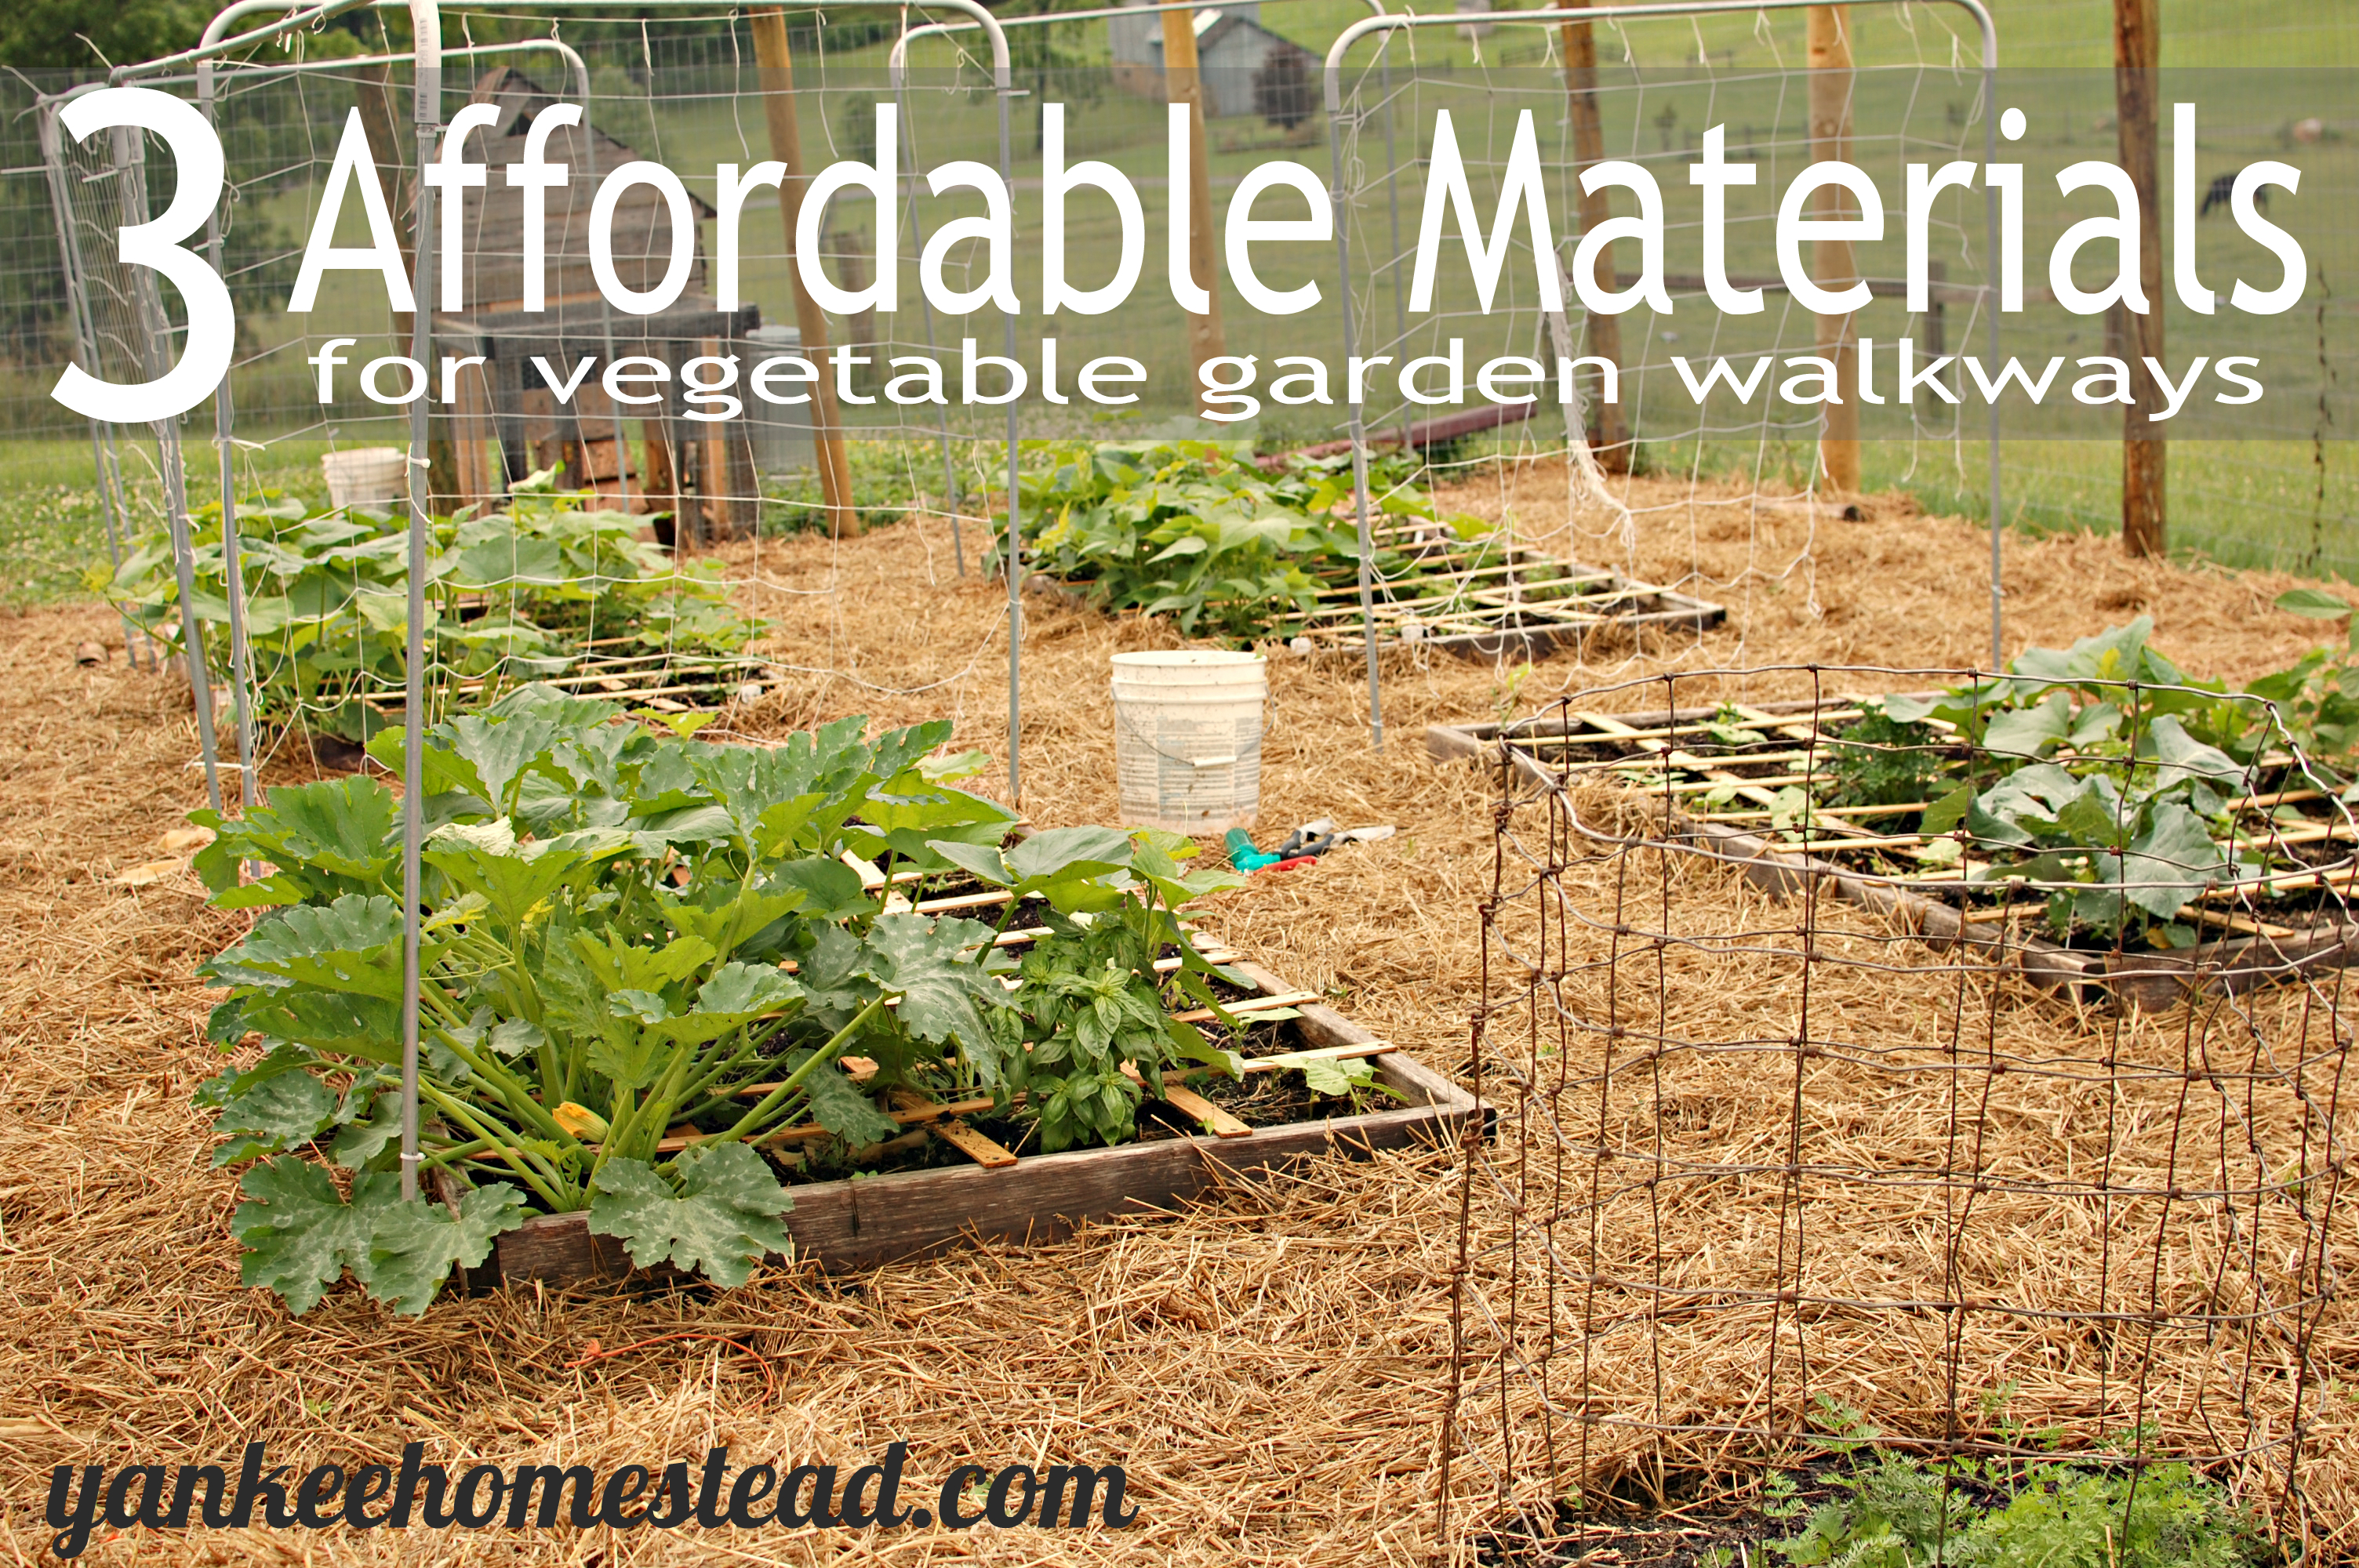 3 Affordable Materials for Vegetable Garden Walkways